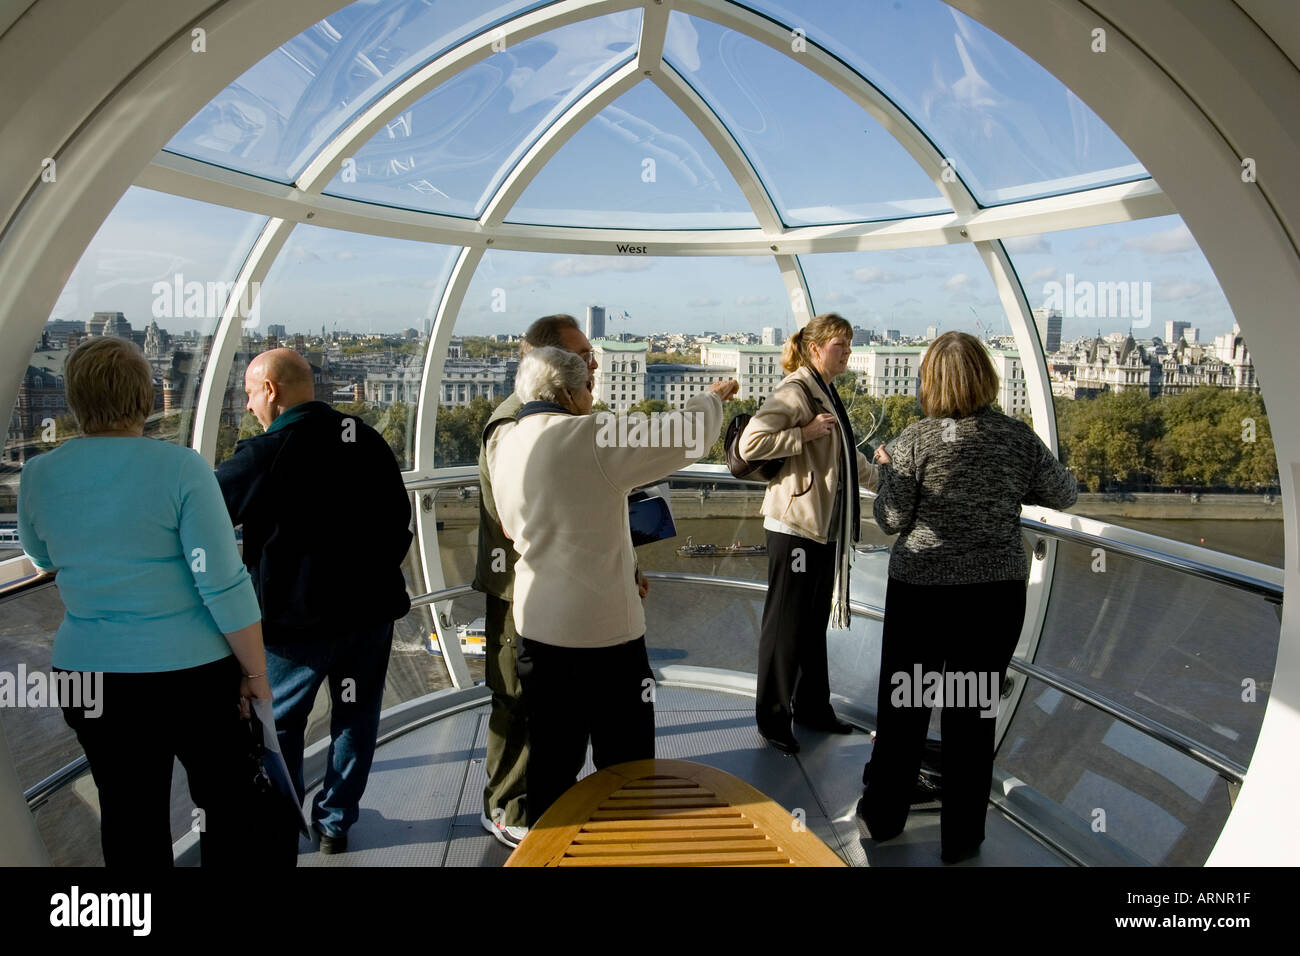 La Cabina London : Los visitantes dentro de la cabina de la noria london eye foto